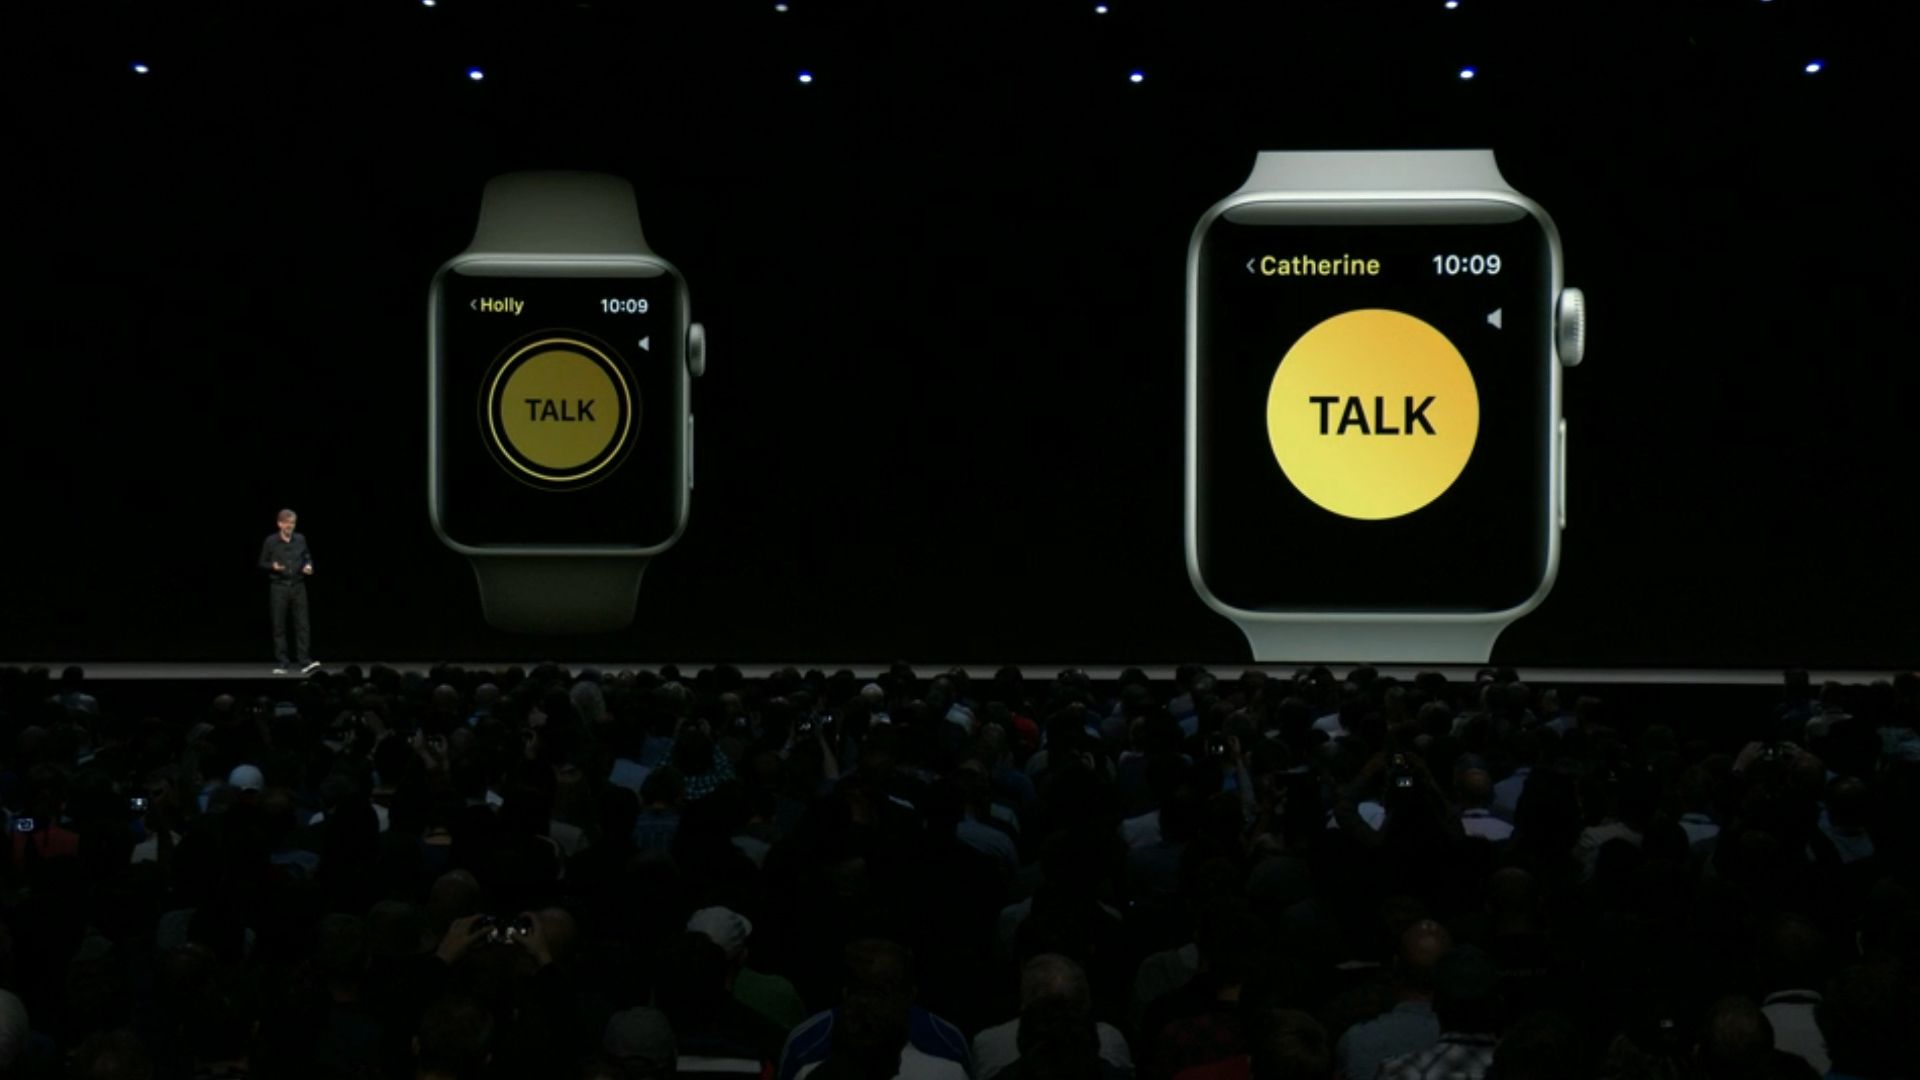 Walkie-Talkie on the Apple Watch is a clever riff on